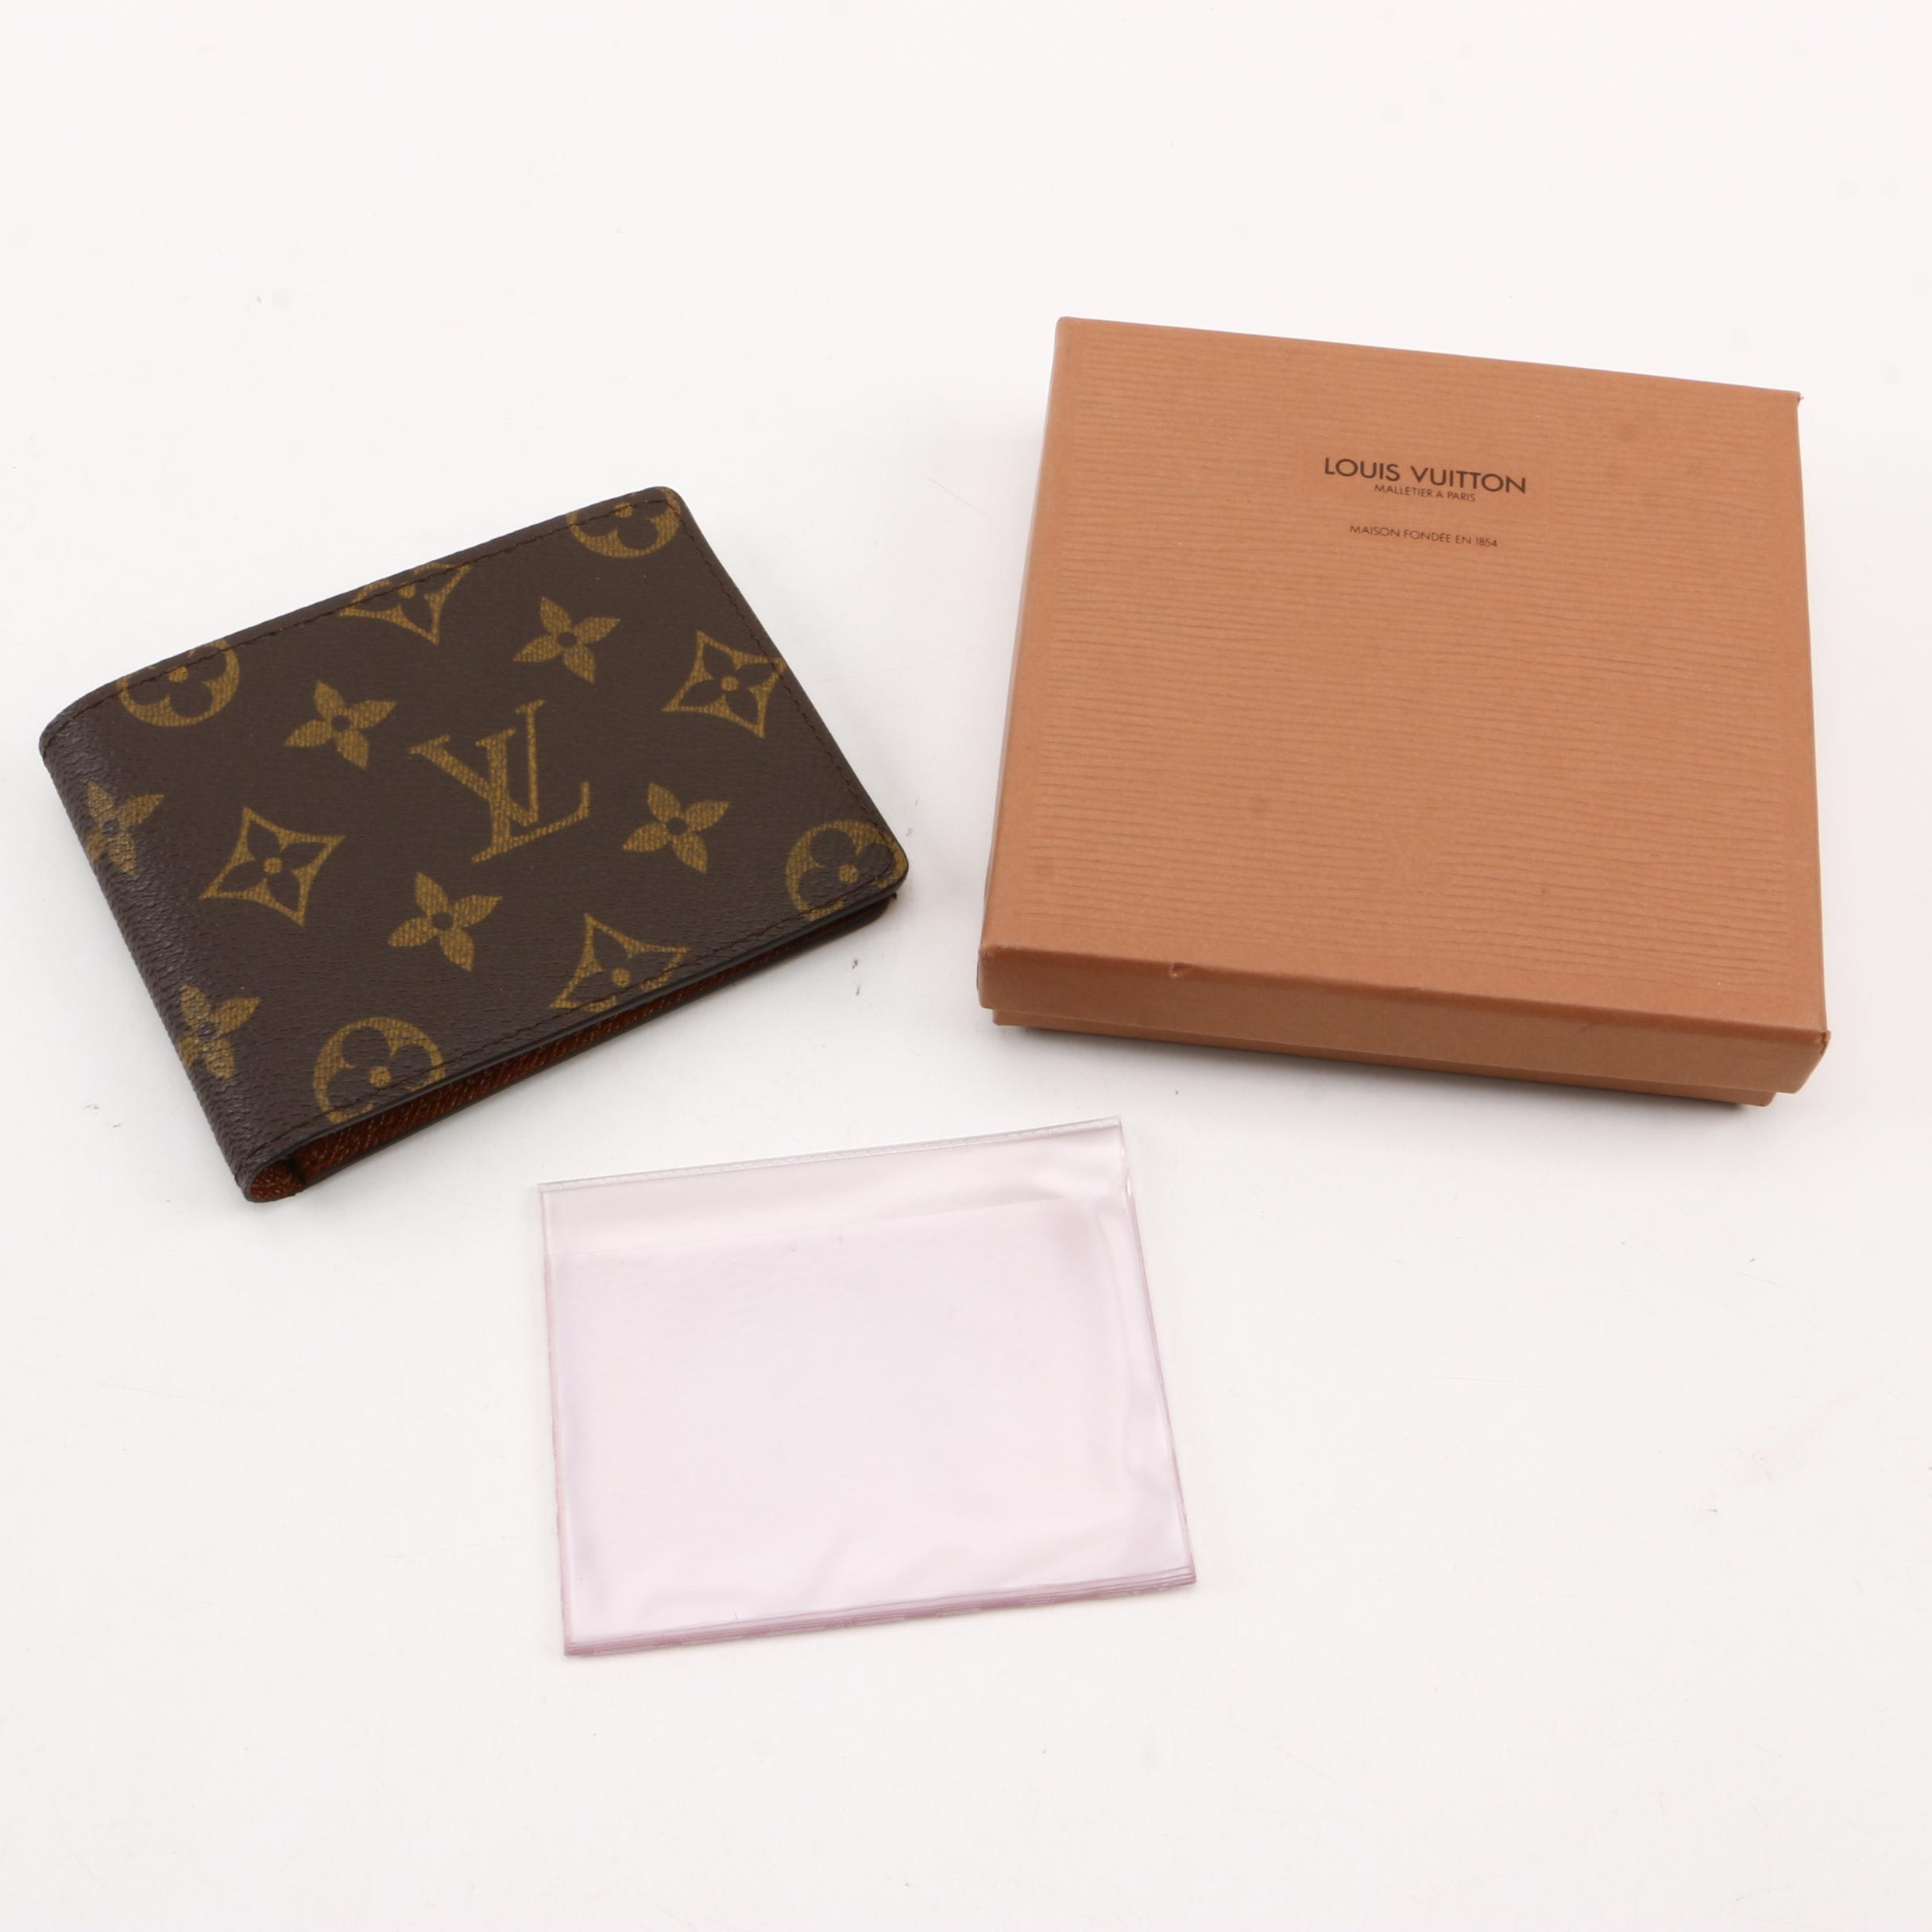 Louis Vuitton Multiple Wallet in Monogram Leather